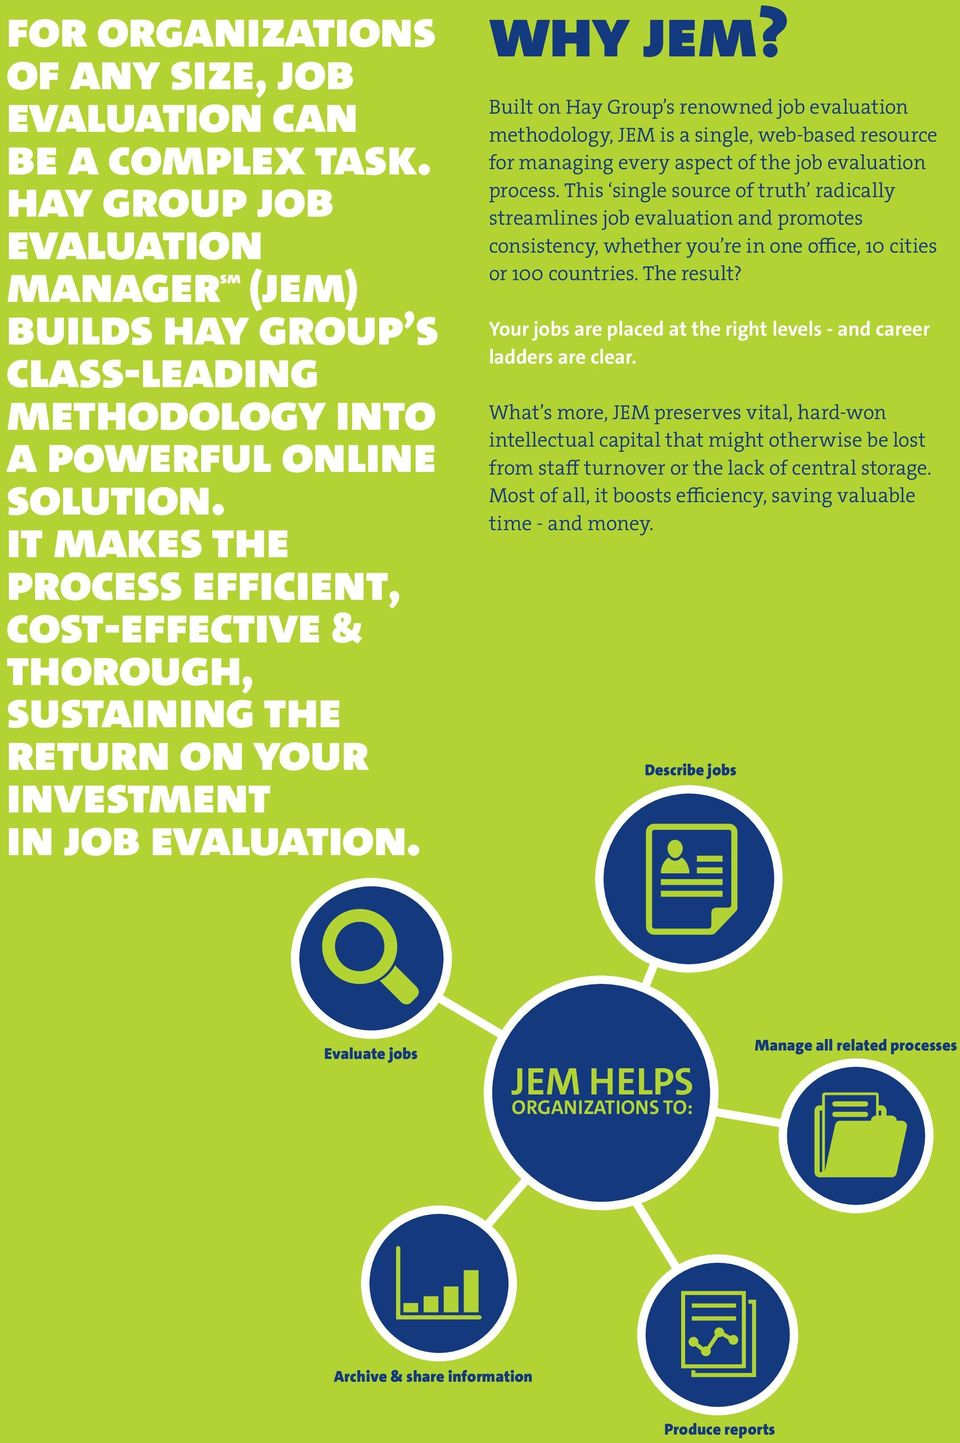 Built on Hay Group s renowned job evaluation methodology, JEM is a single, web-based resource for managing every aspect of the job evaluation process.